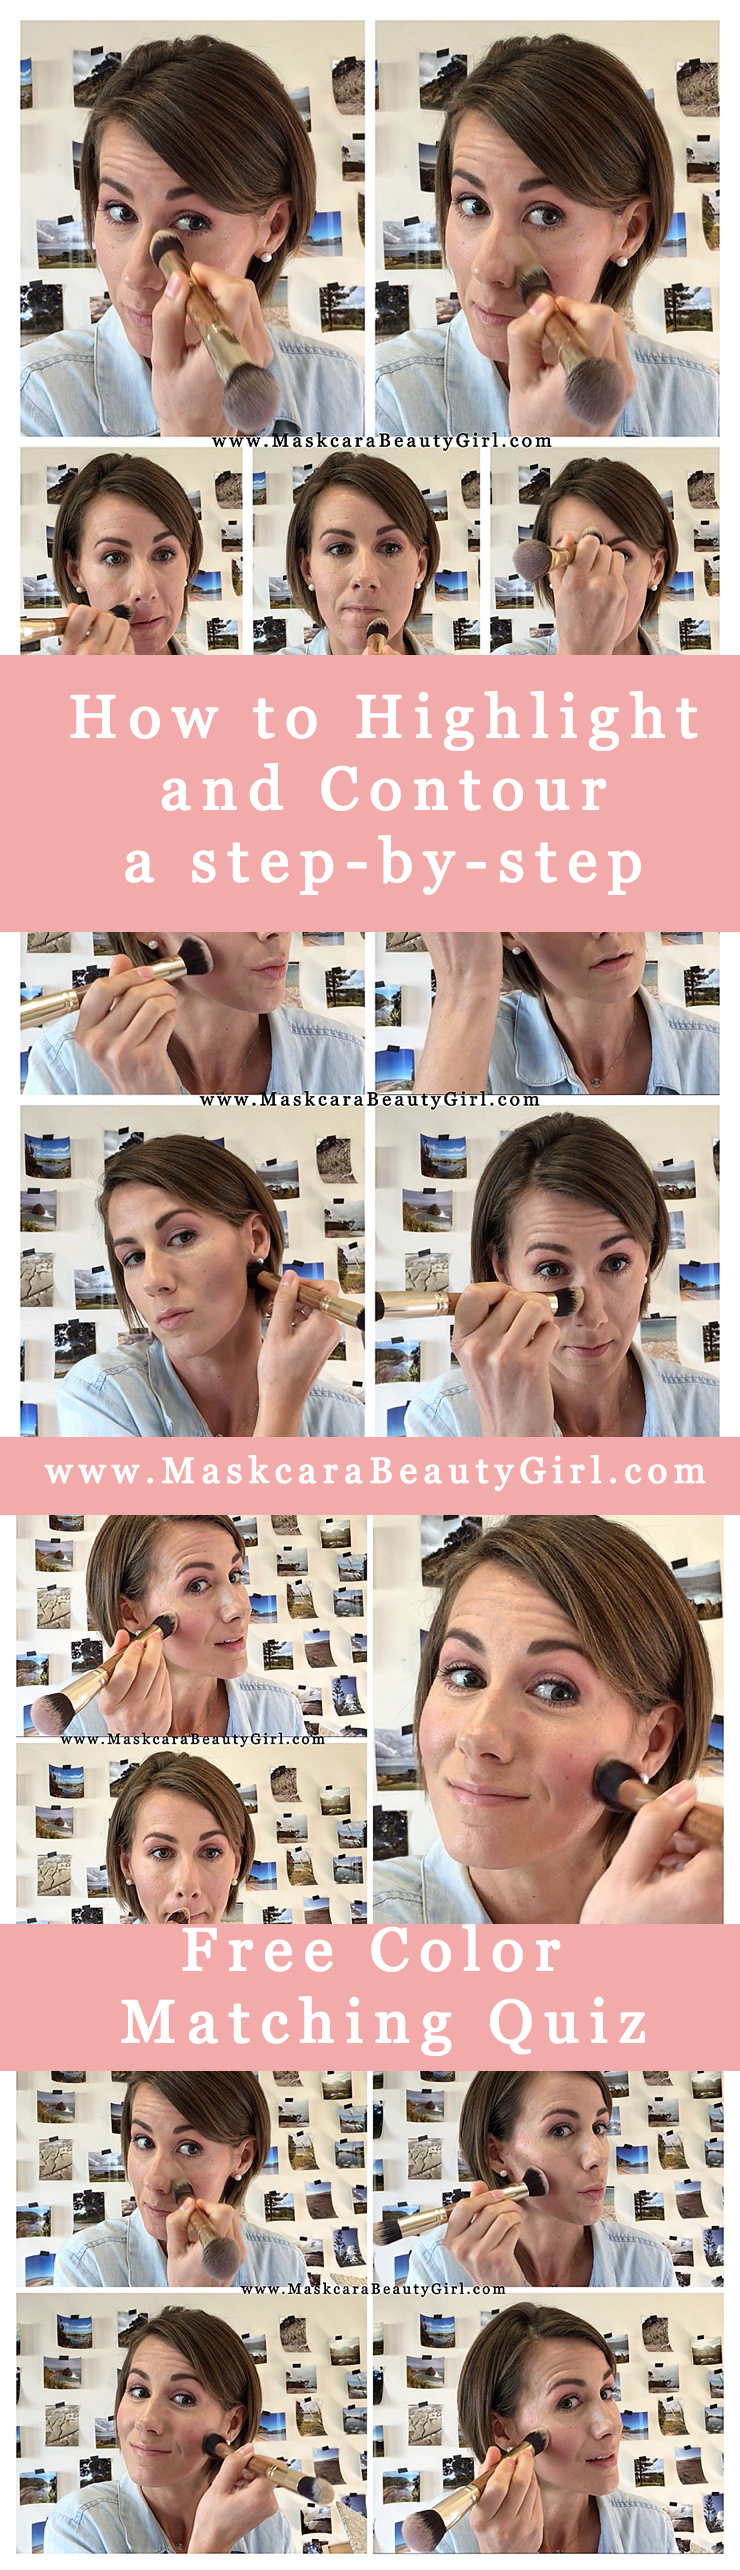 how to highlight and contour Maskcara makeup how to hac a step by step guide to Highlighting and contouring by www.maskcarabeautygirl.com